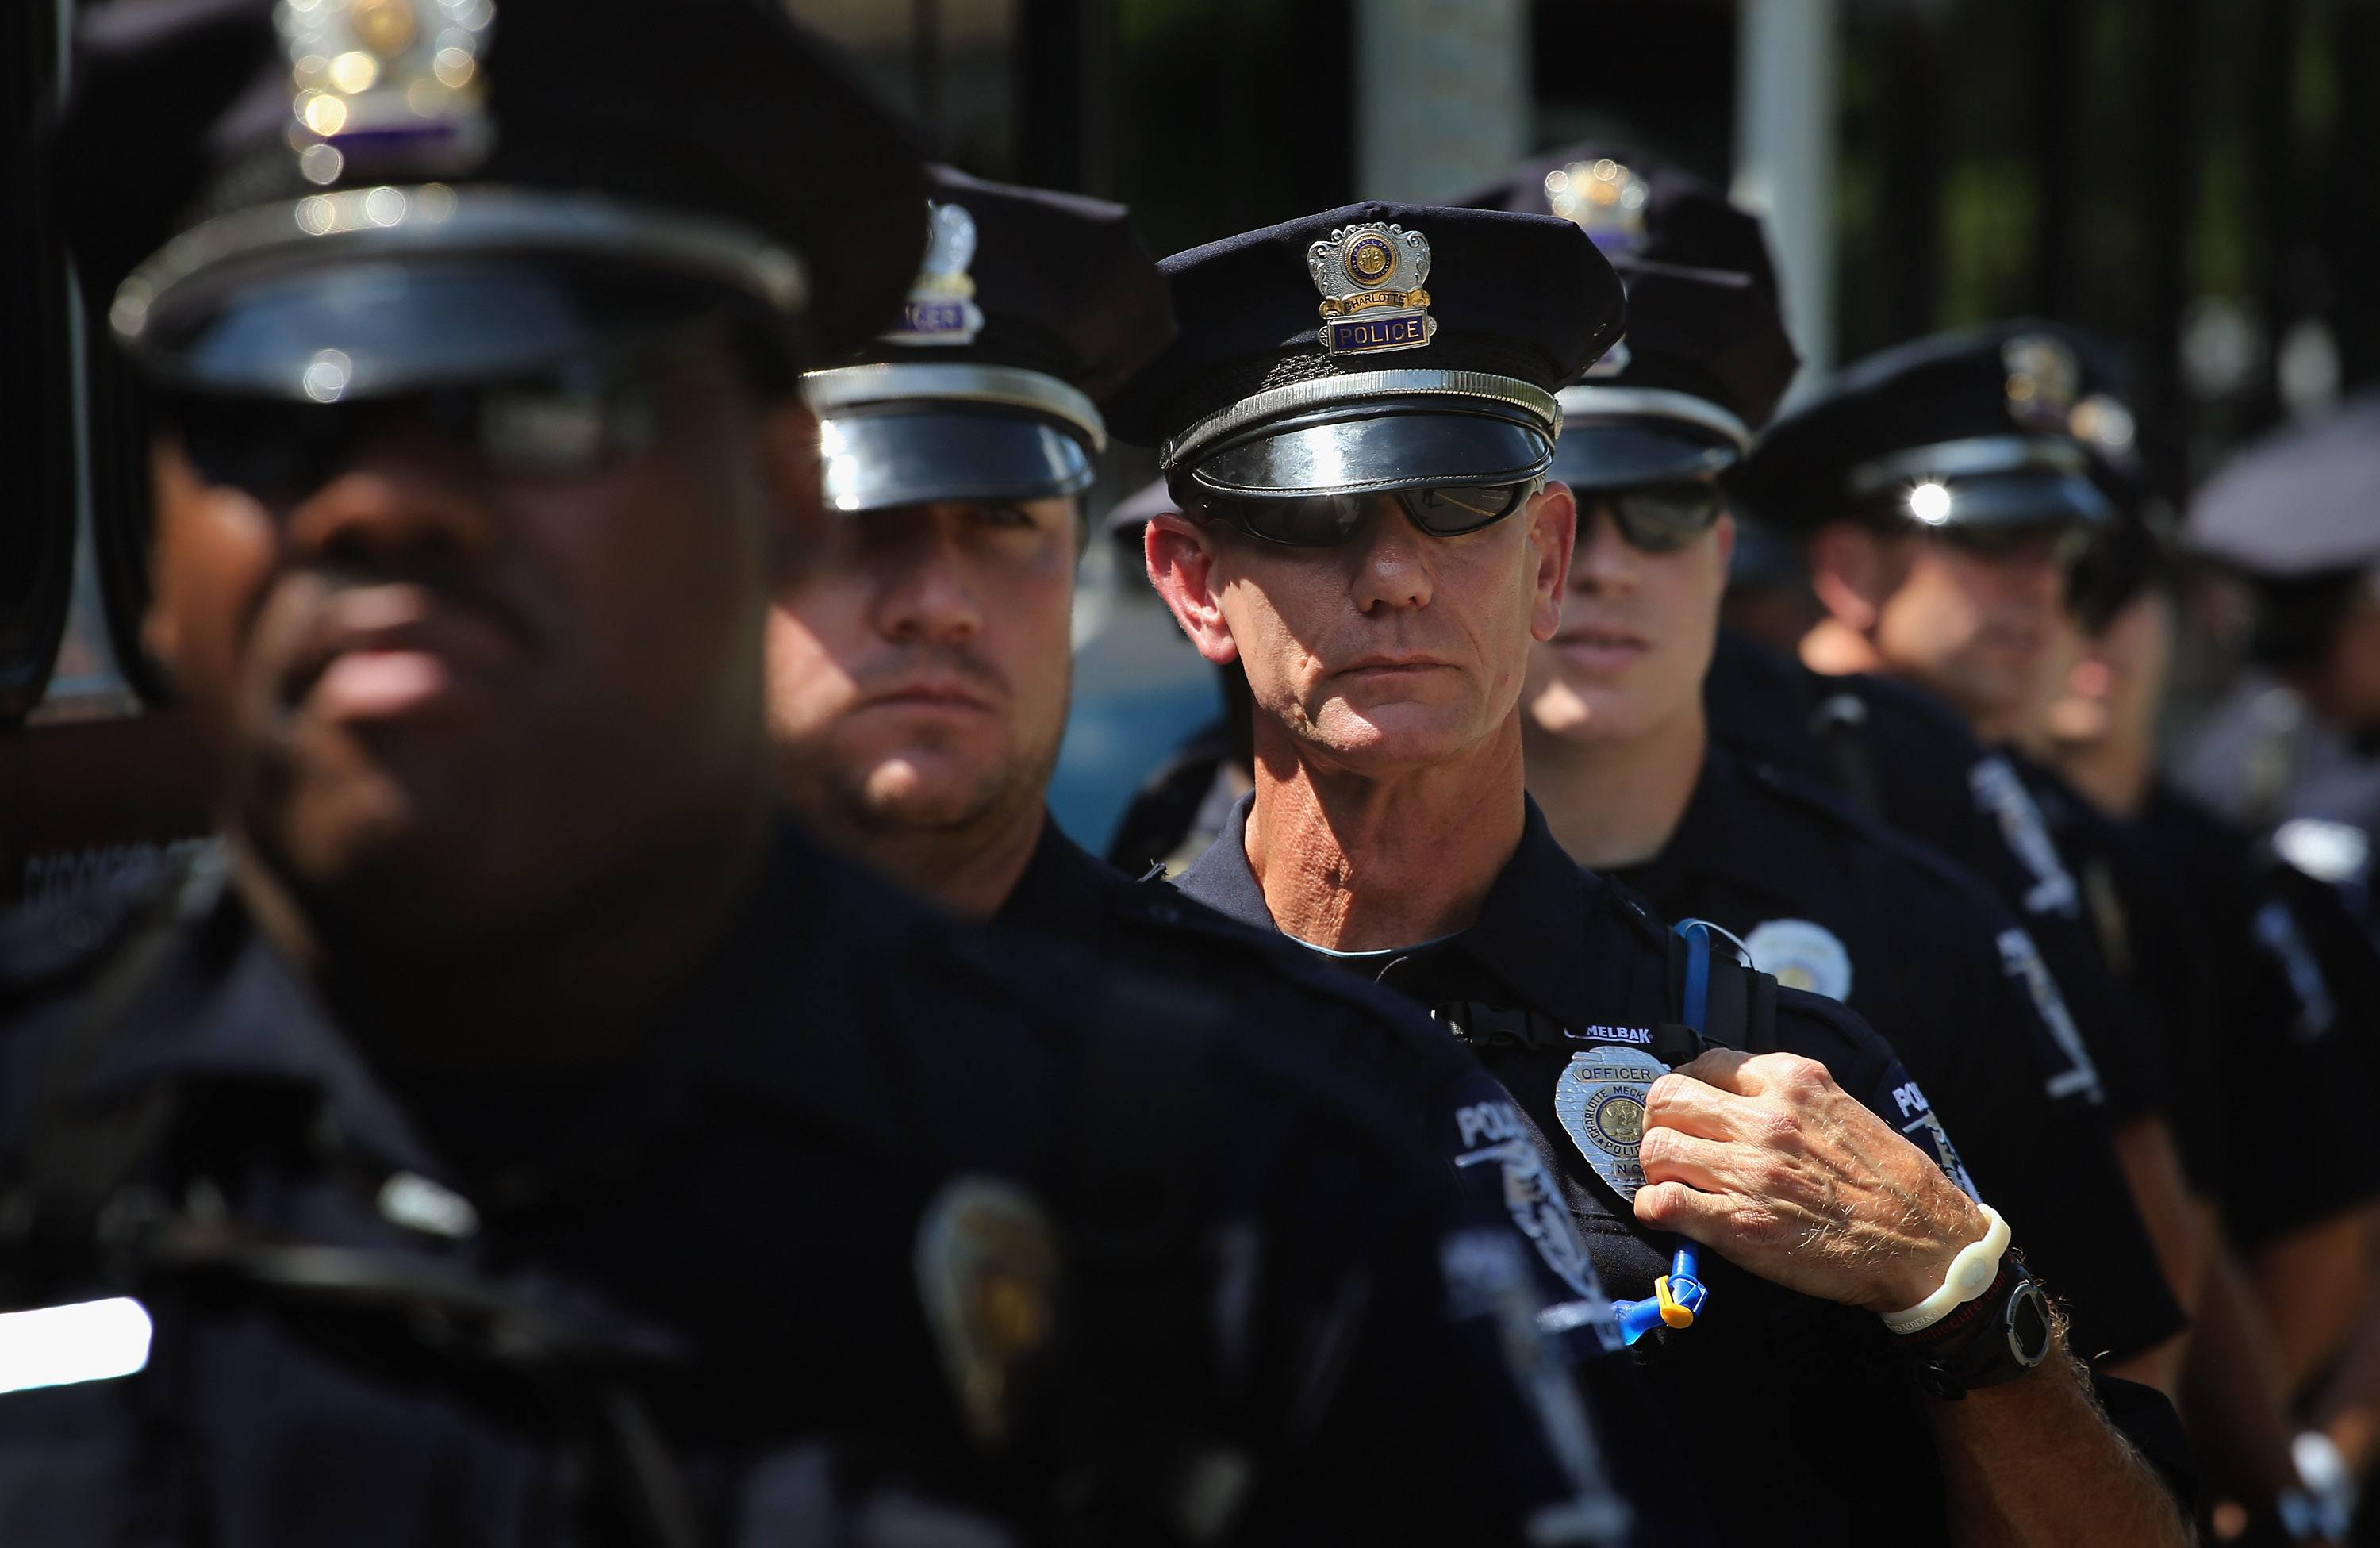 Police officers in Charlotte